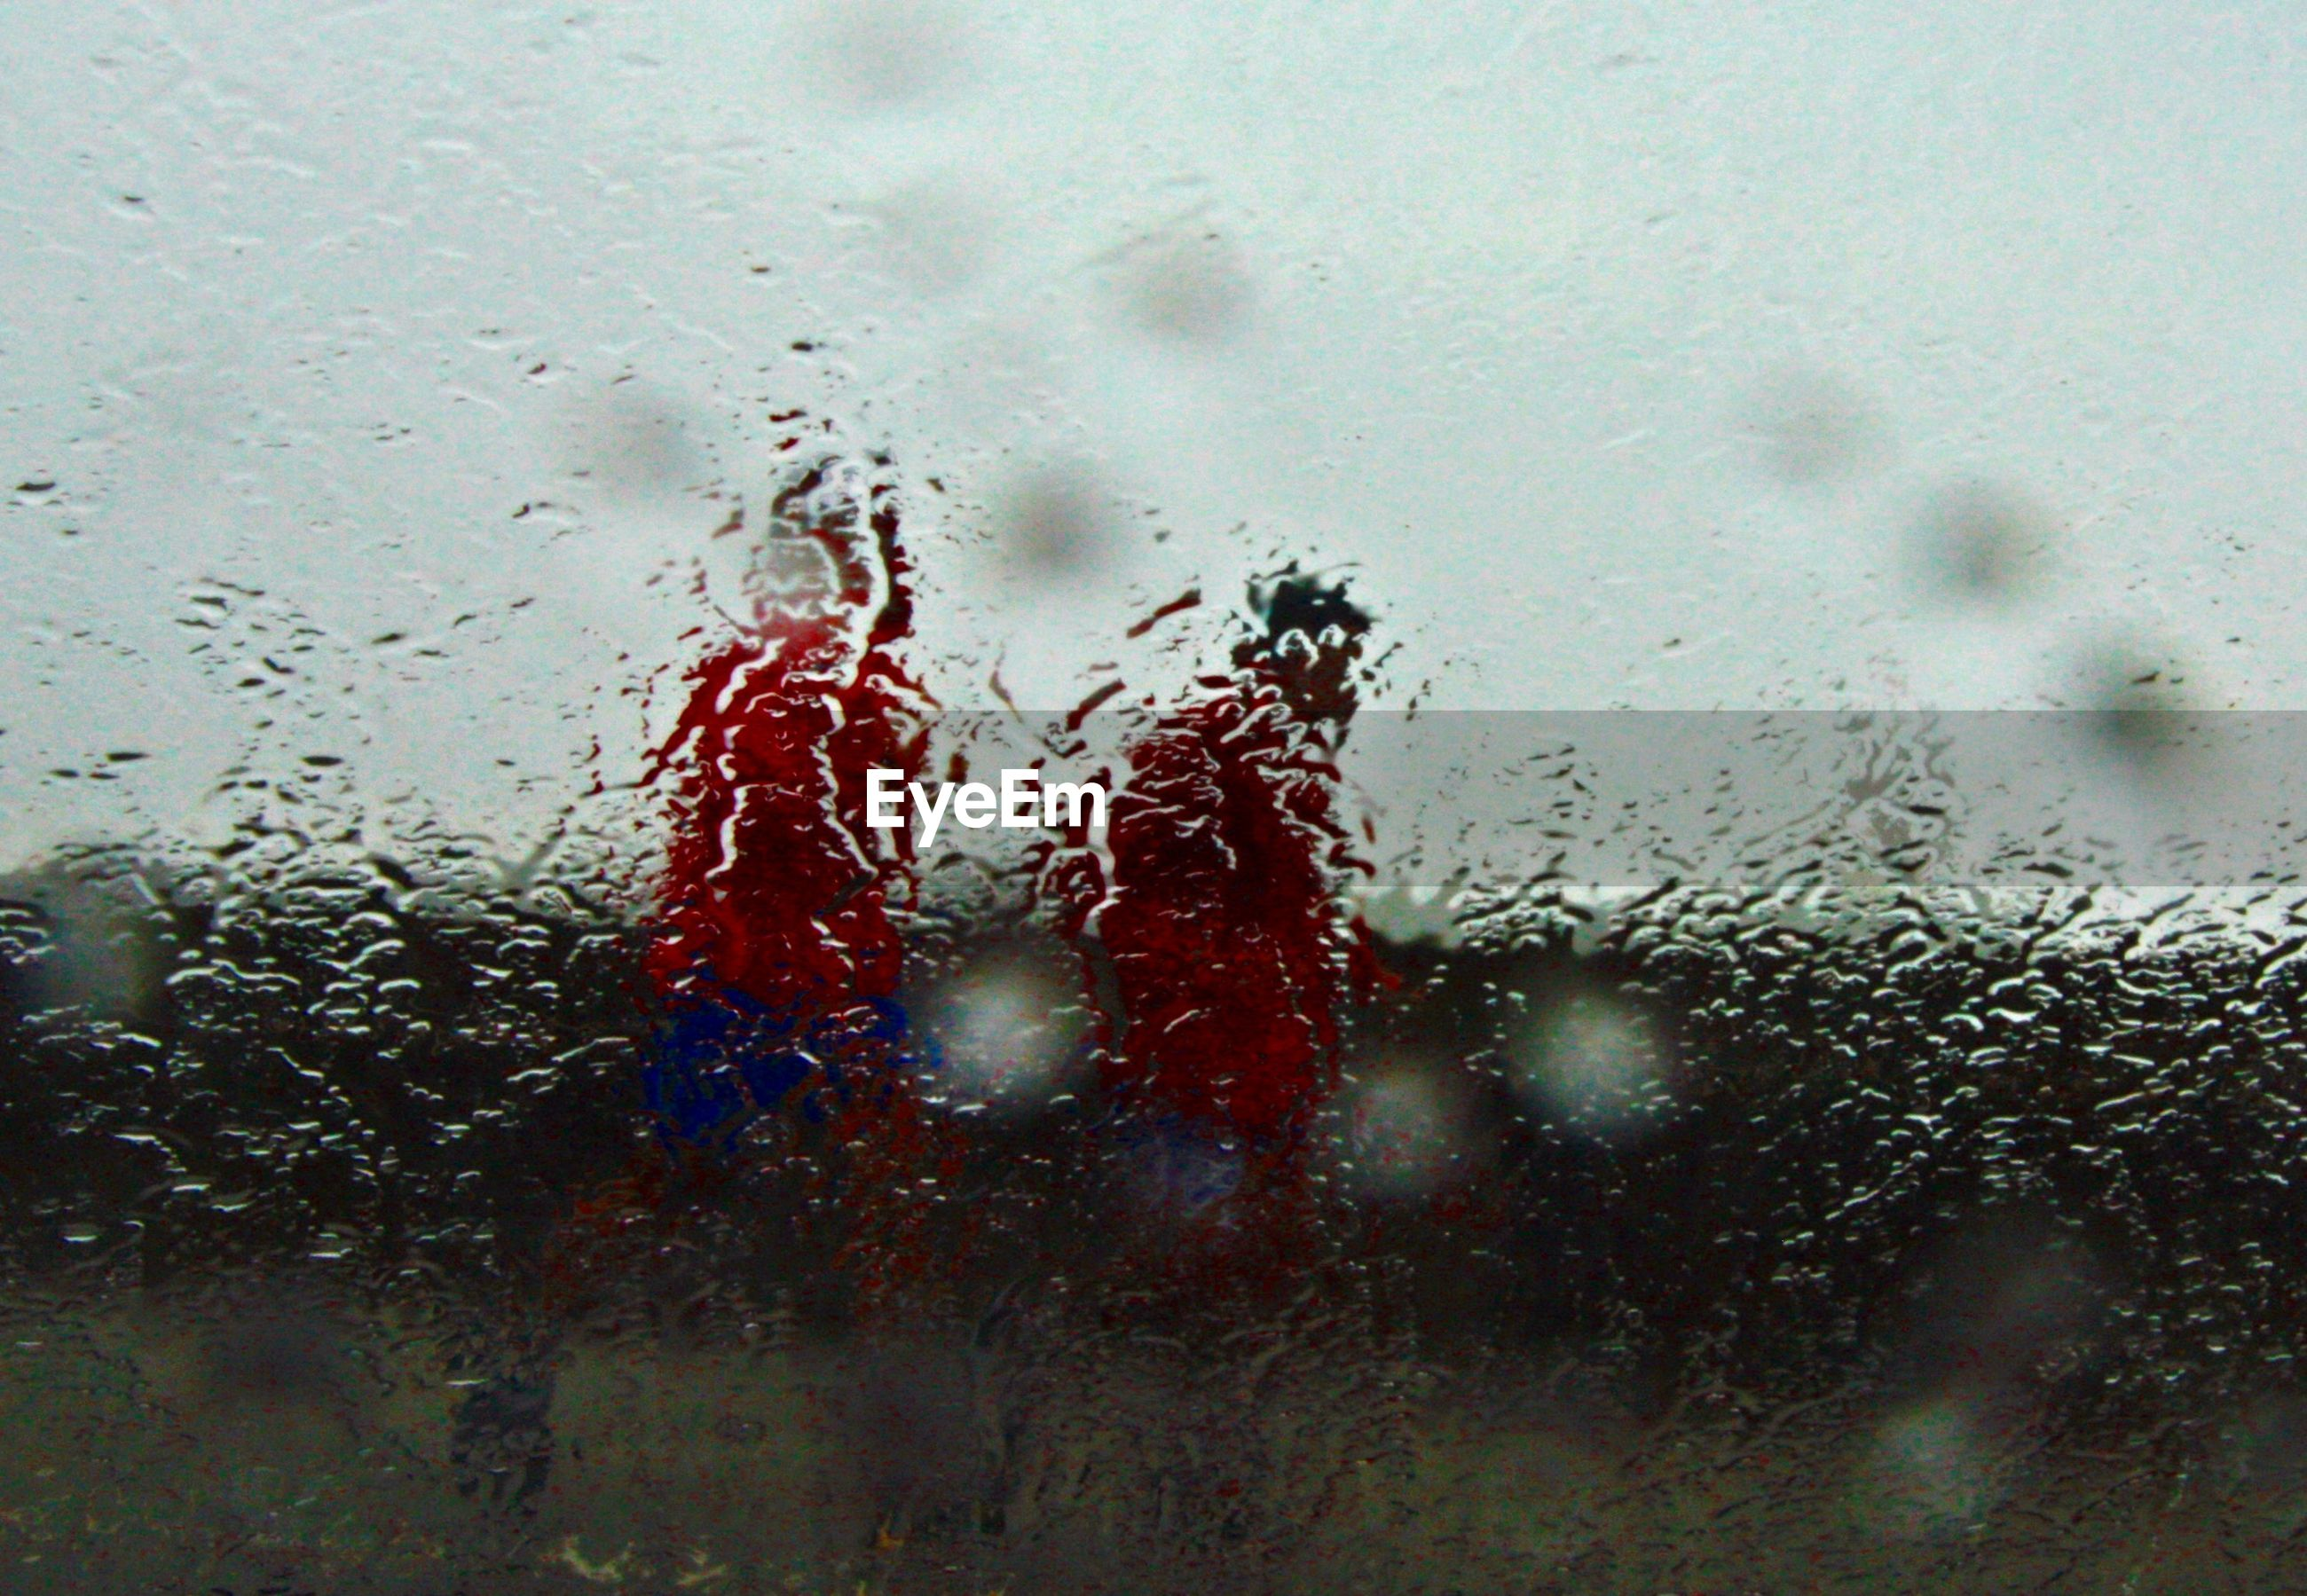 Men walking on field seen through wet window in rainy season